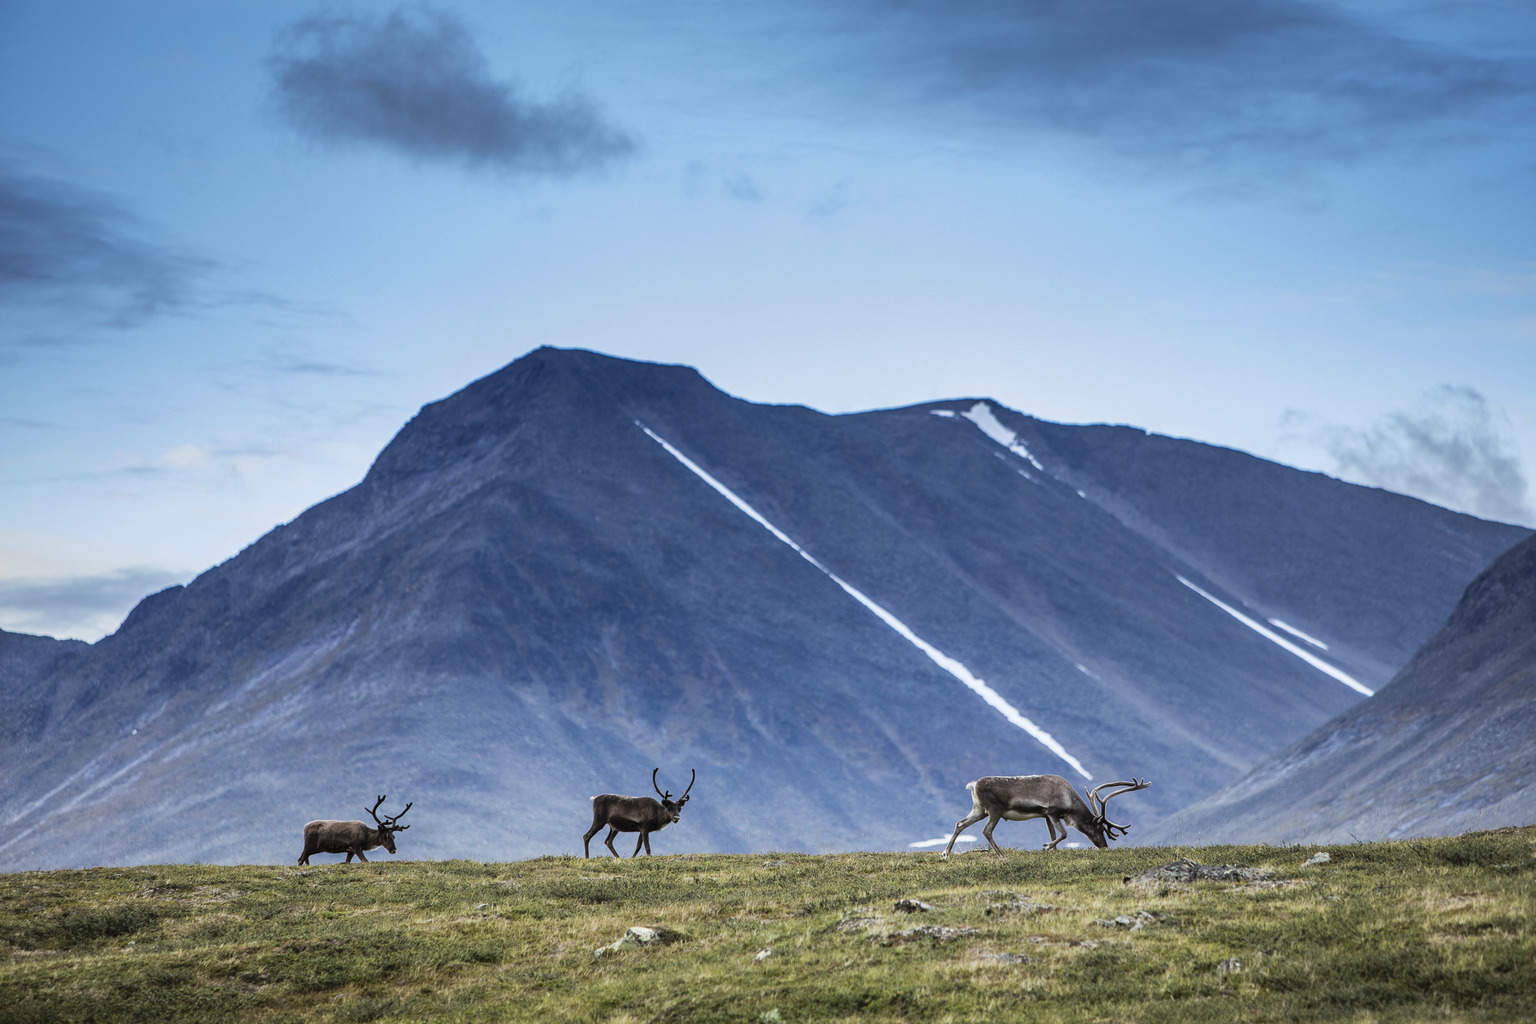 Reindeers in the mountains